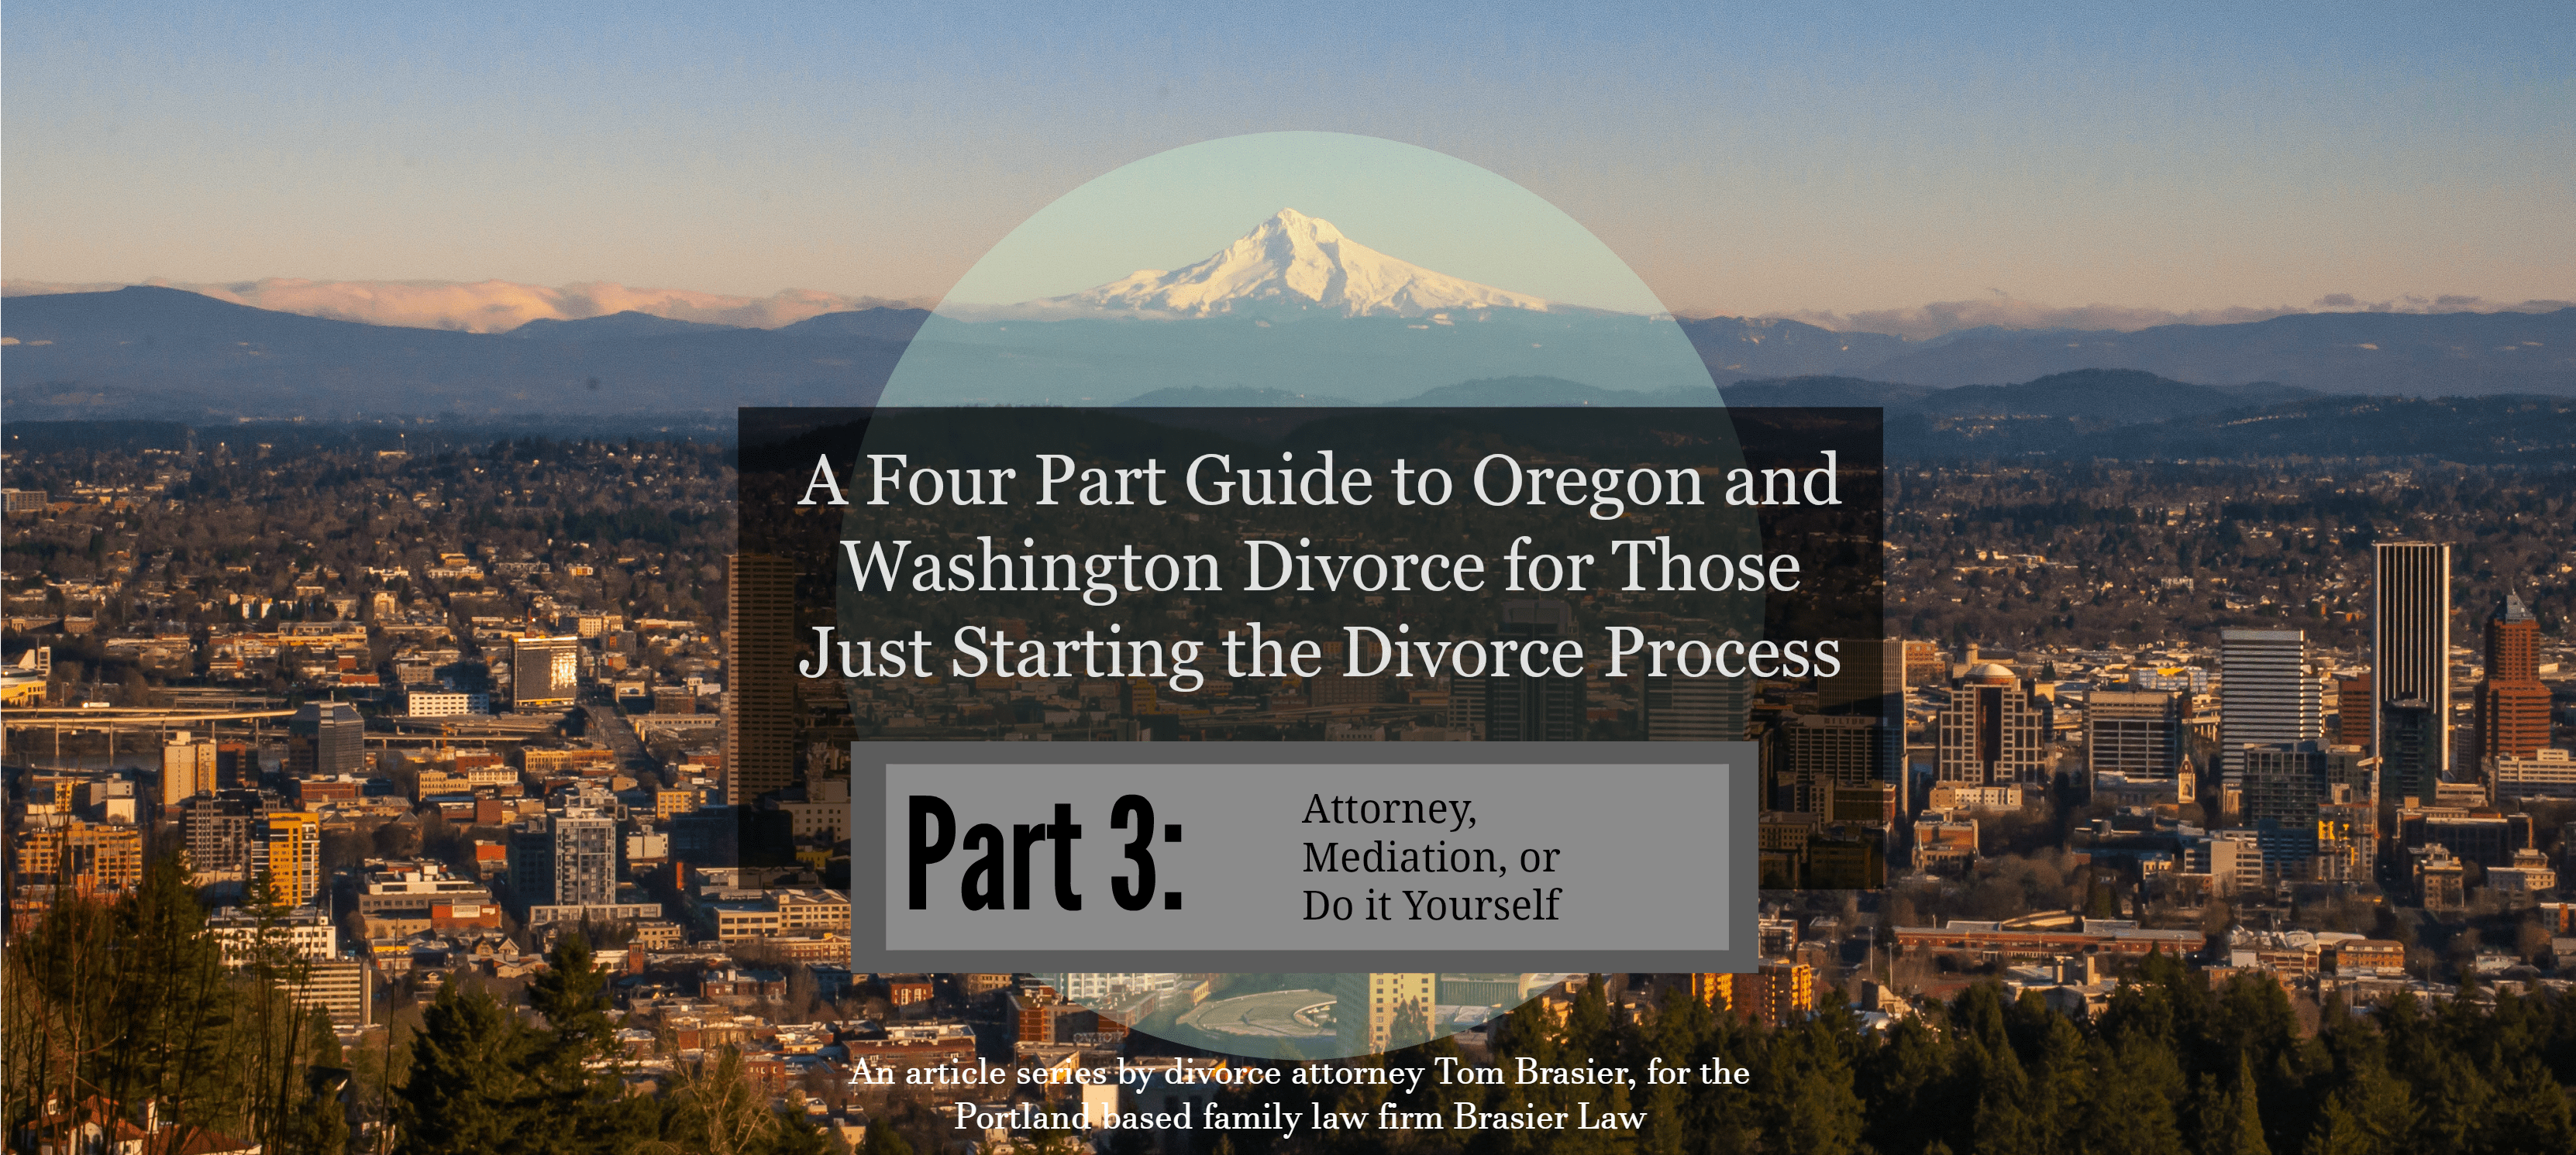 Who should I hire to do my Oregon or Washington divorce?